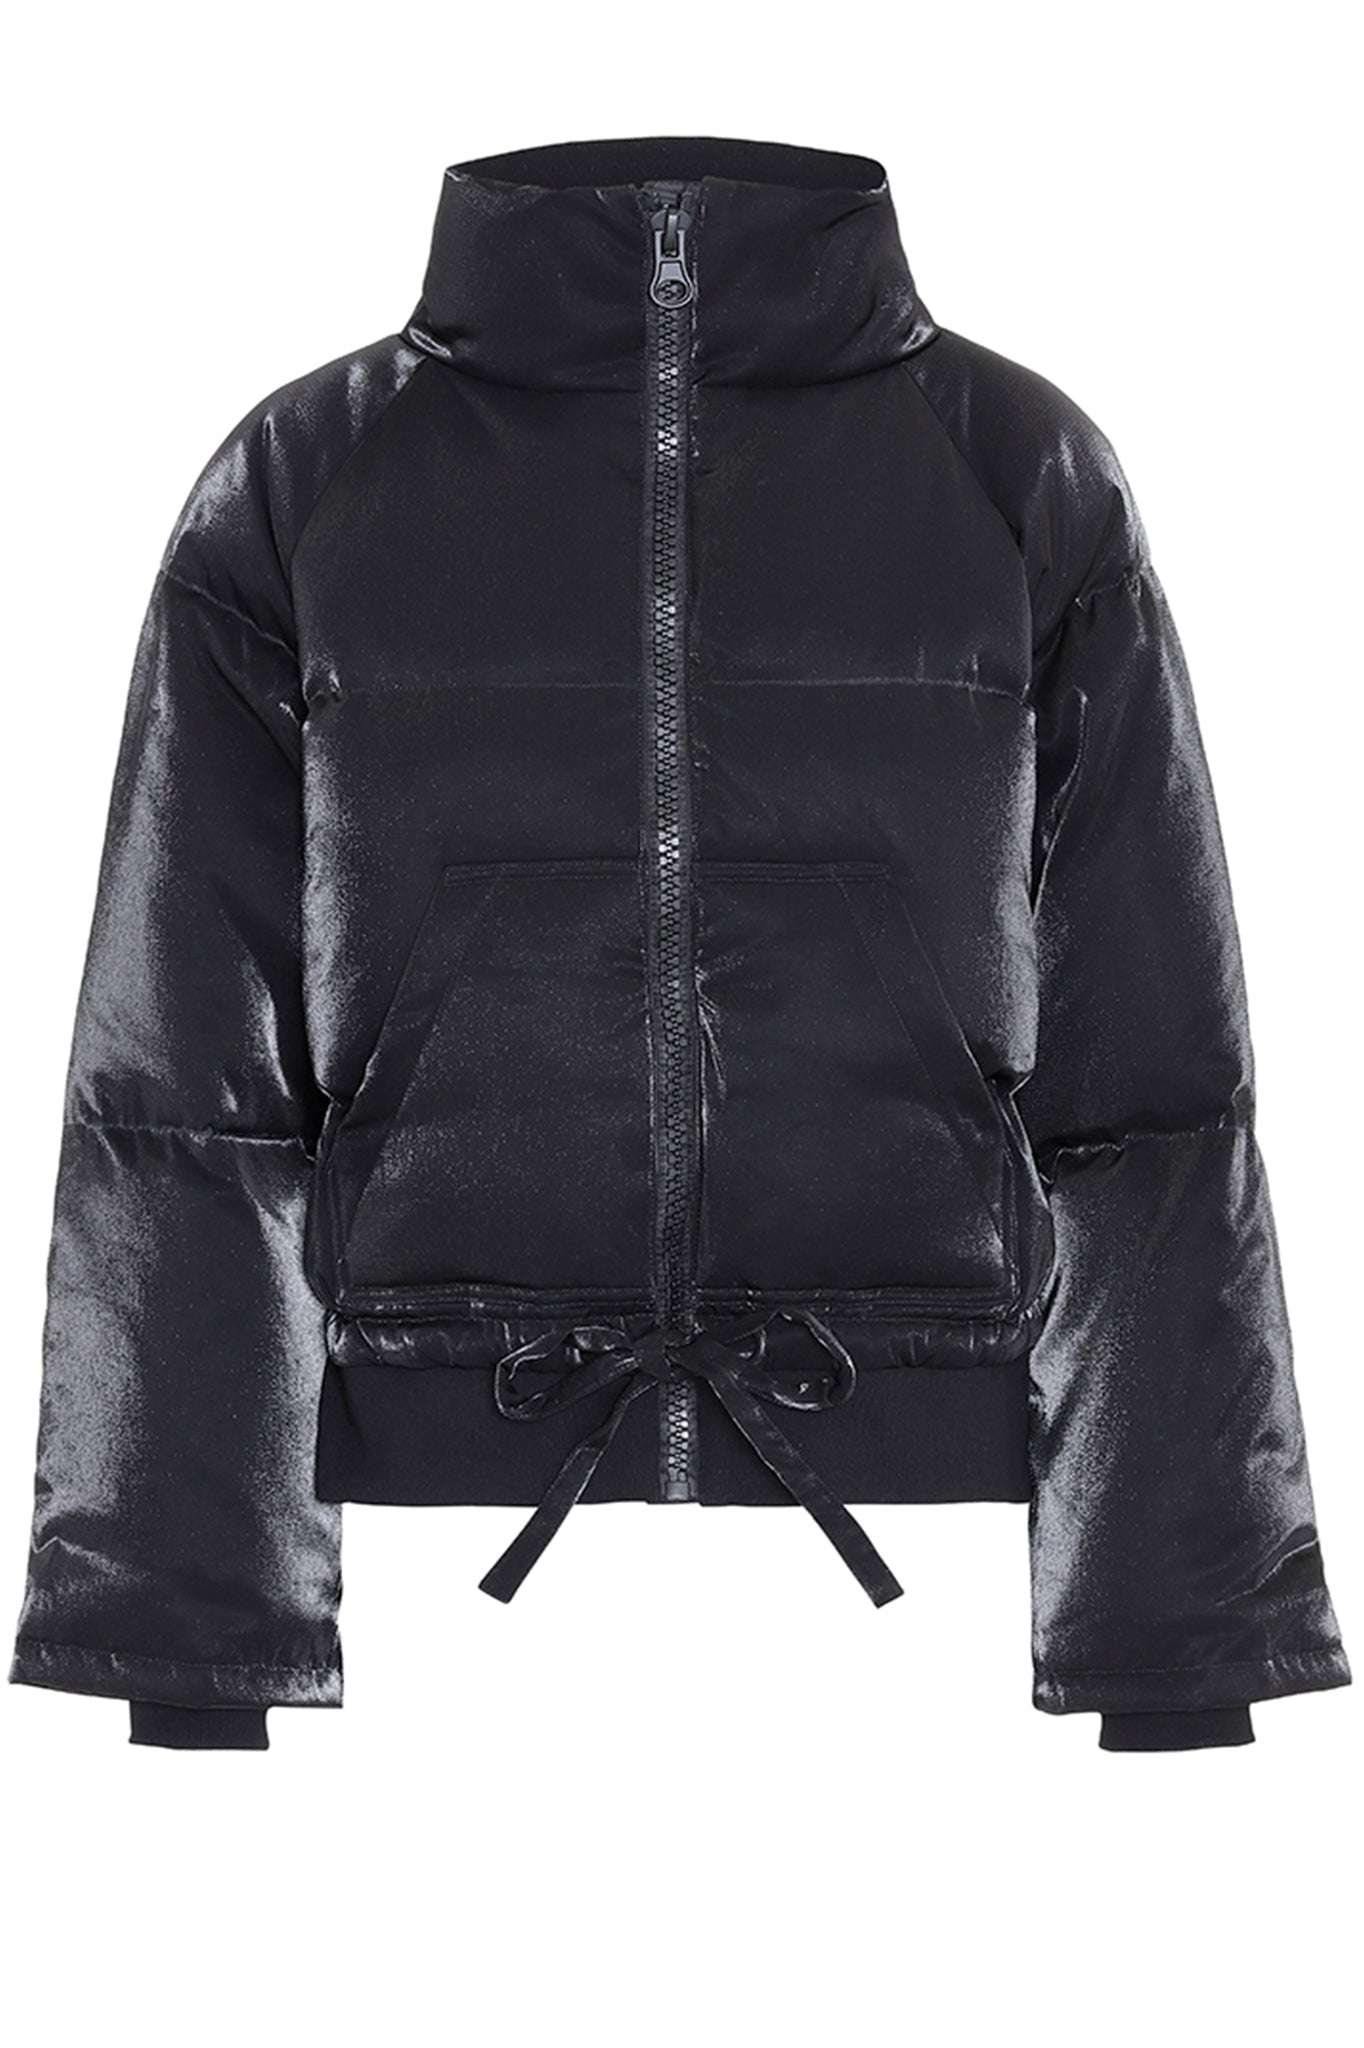 Hunkon Black High Neck Puffer Coat